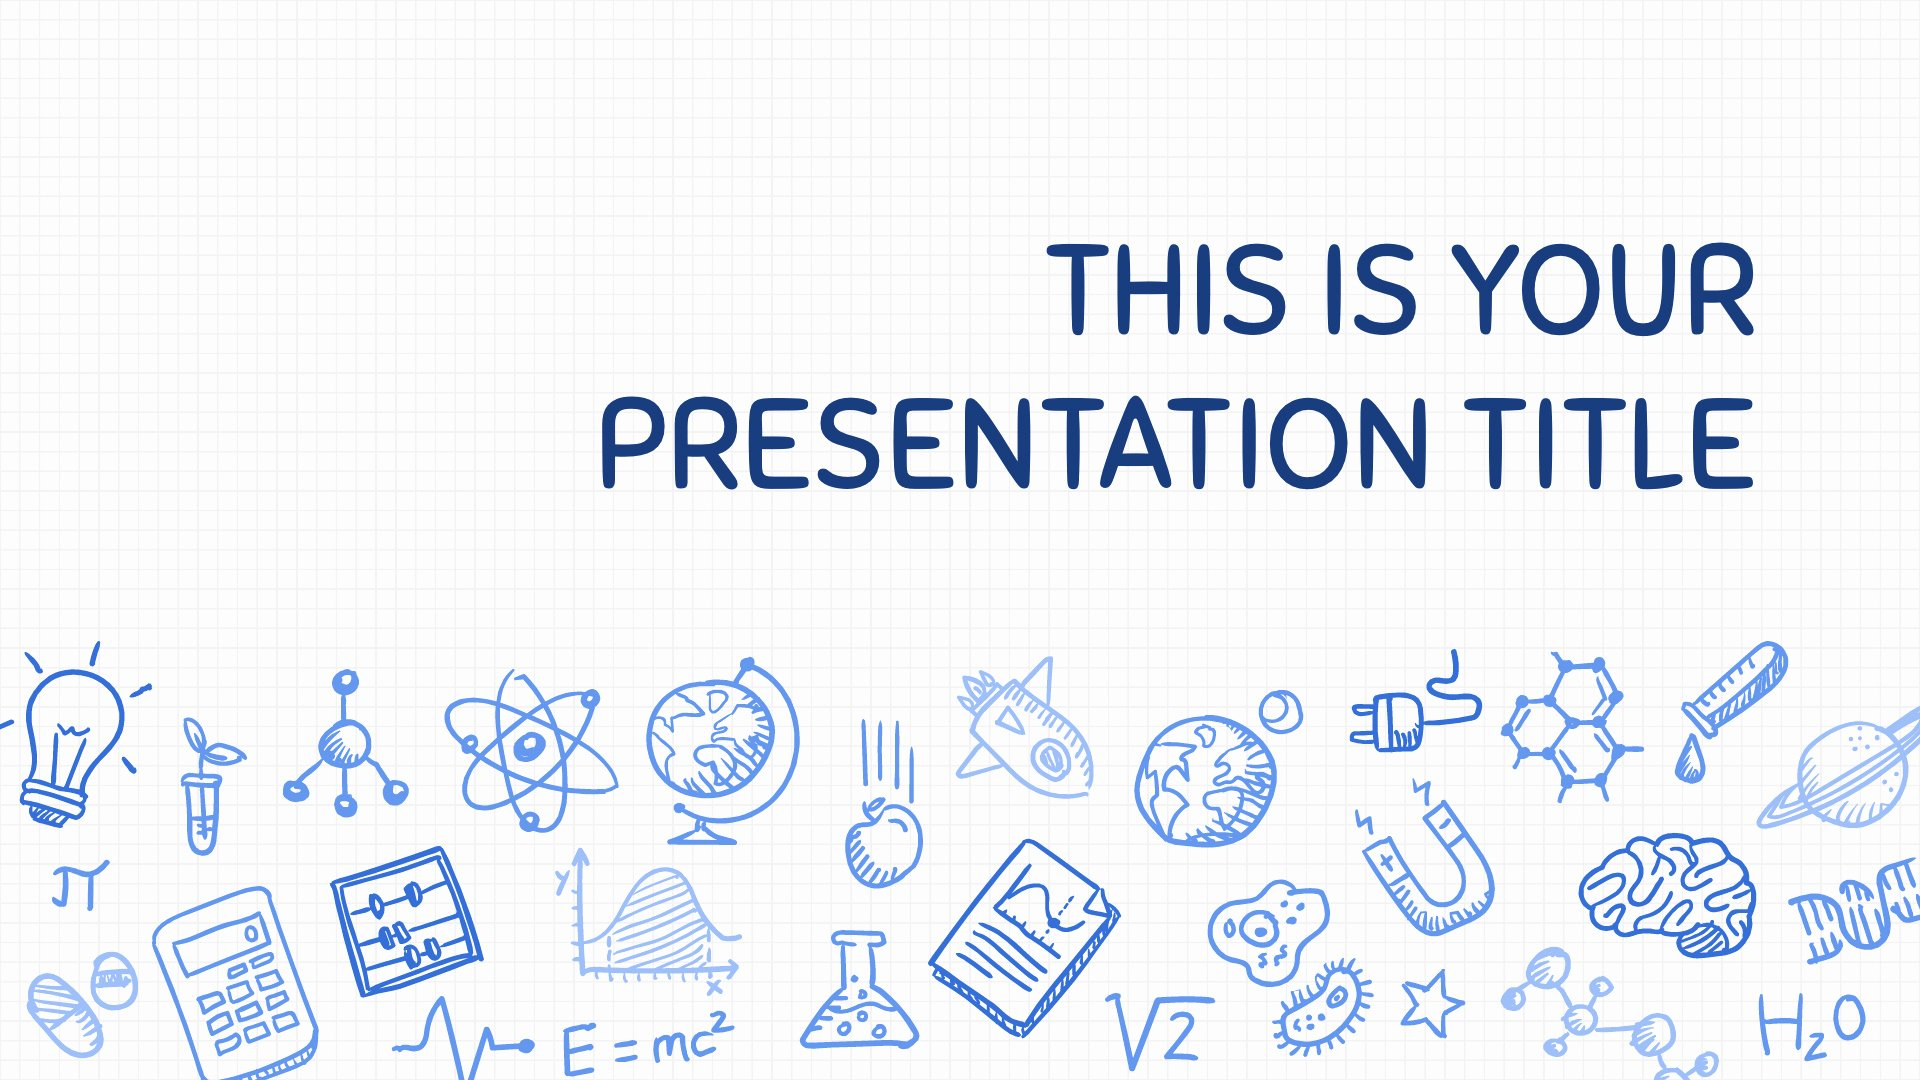 Science Power Point Templates New Free Playful Powerpoint Template or Google Slides theme with Science Design